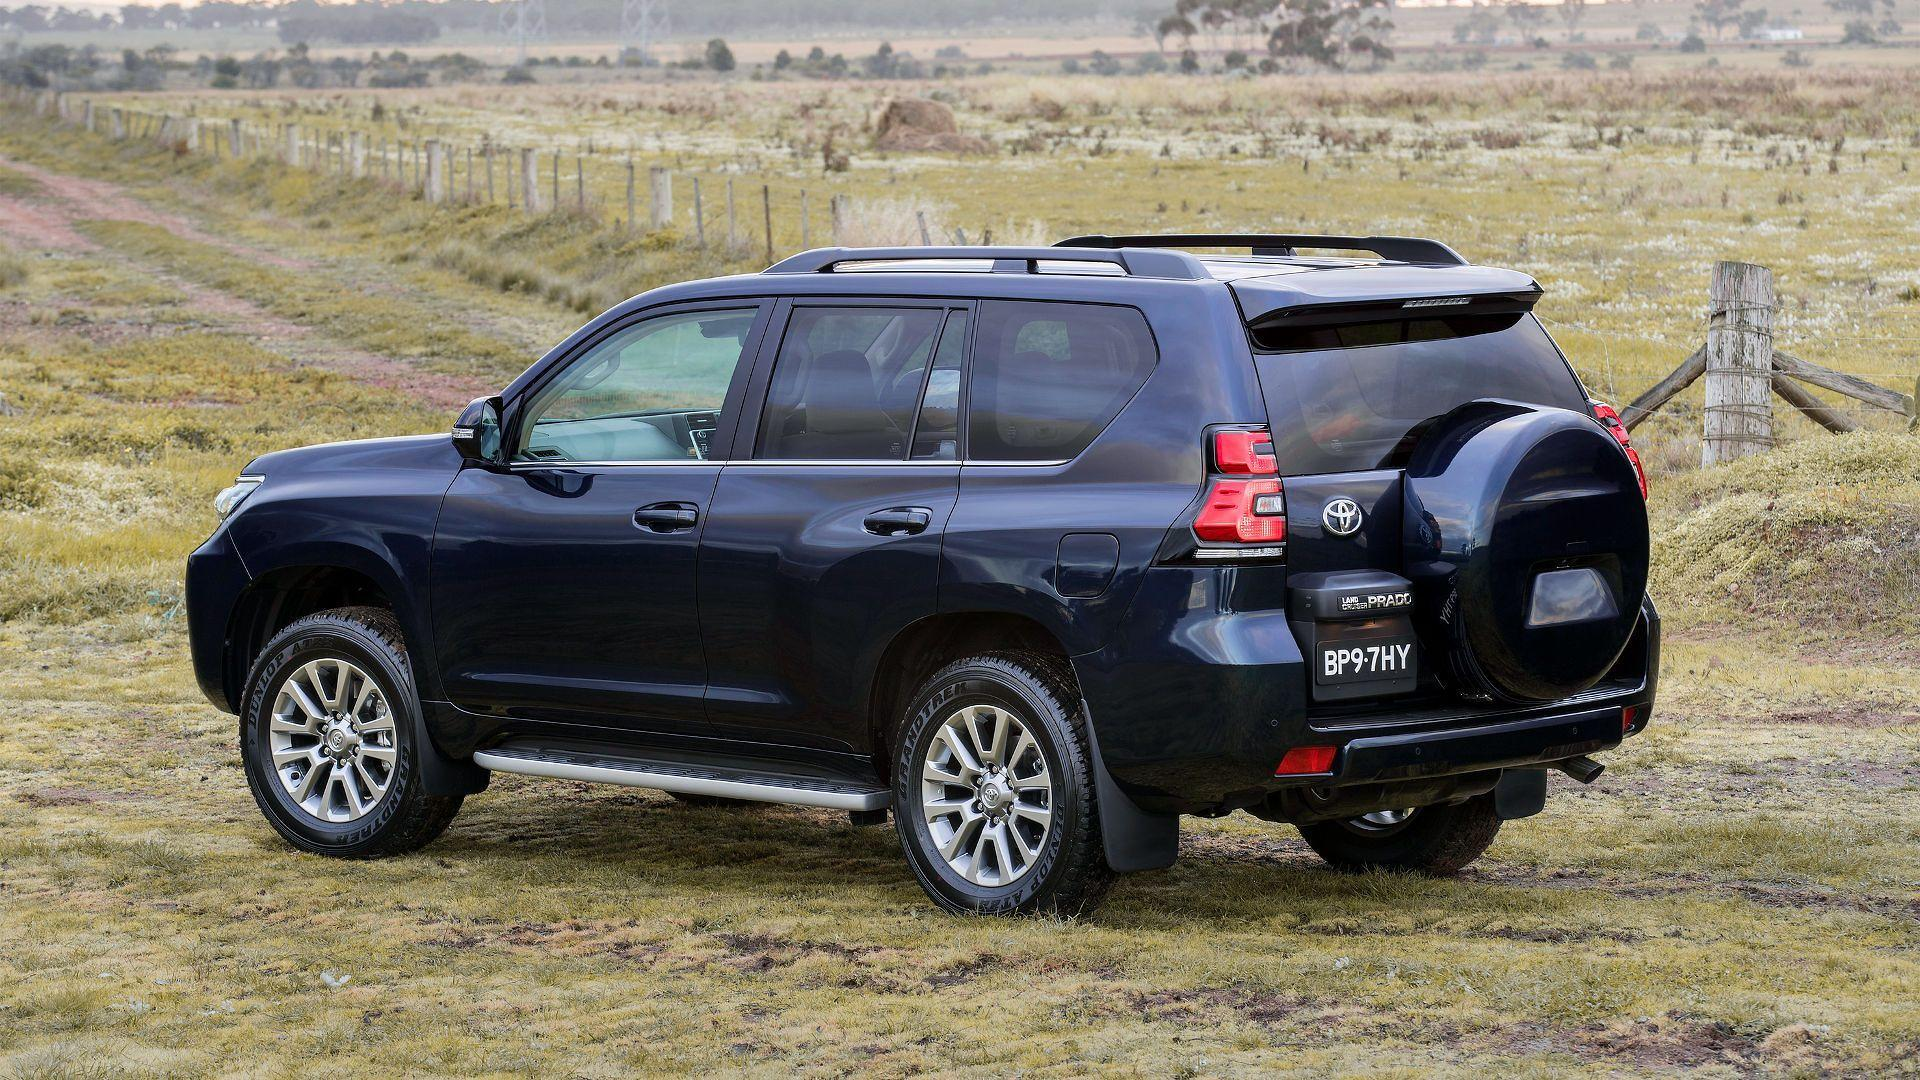 2018-toyota-land-cruiser-australia-official-image (2)